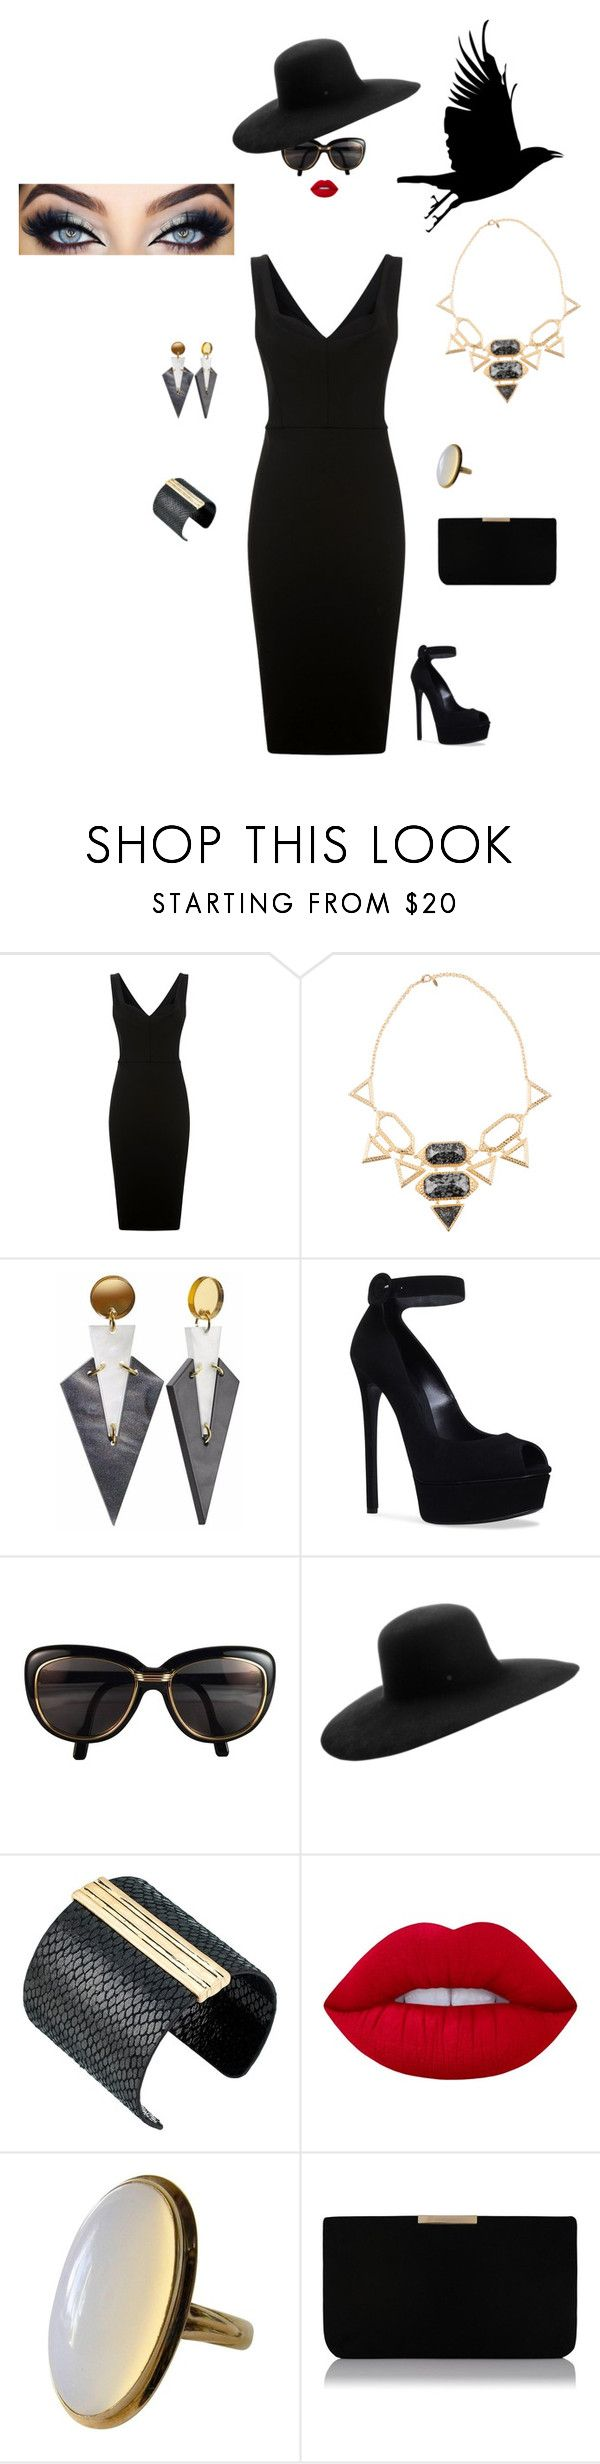 """""""DL"""" by hrockholt ❤ liked on Polyvore featuring Victoria Beckham, Isharya, Toolally, Casadei, Cartier, Maison Michel, The Sak, Lime Crime and L.K.Bennett"""